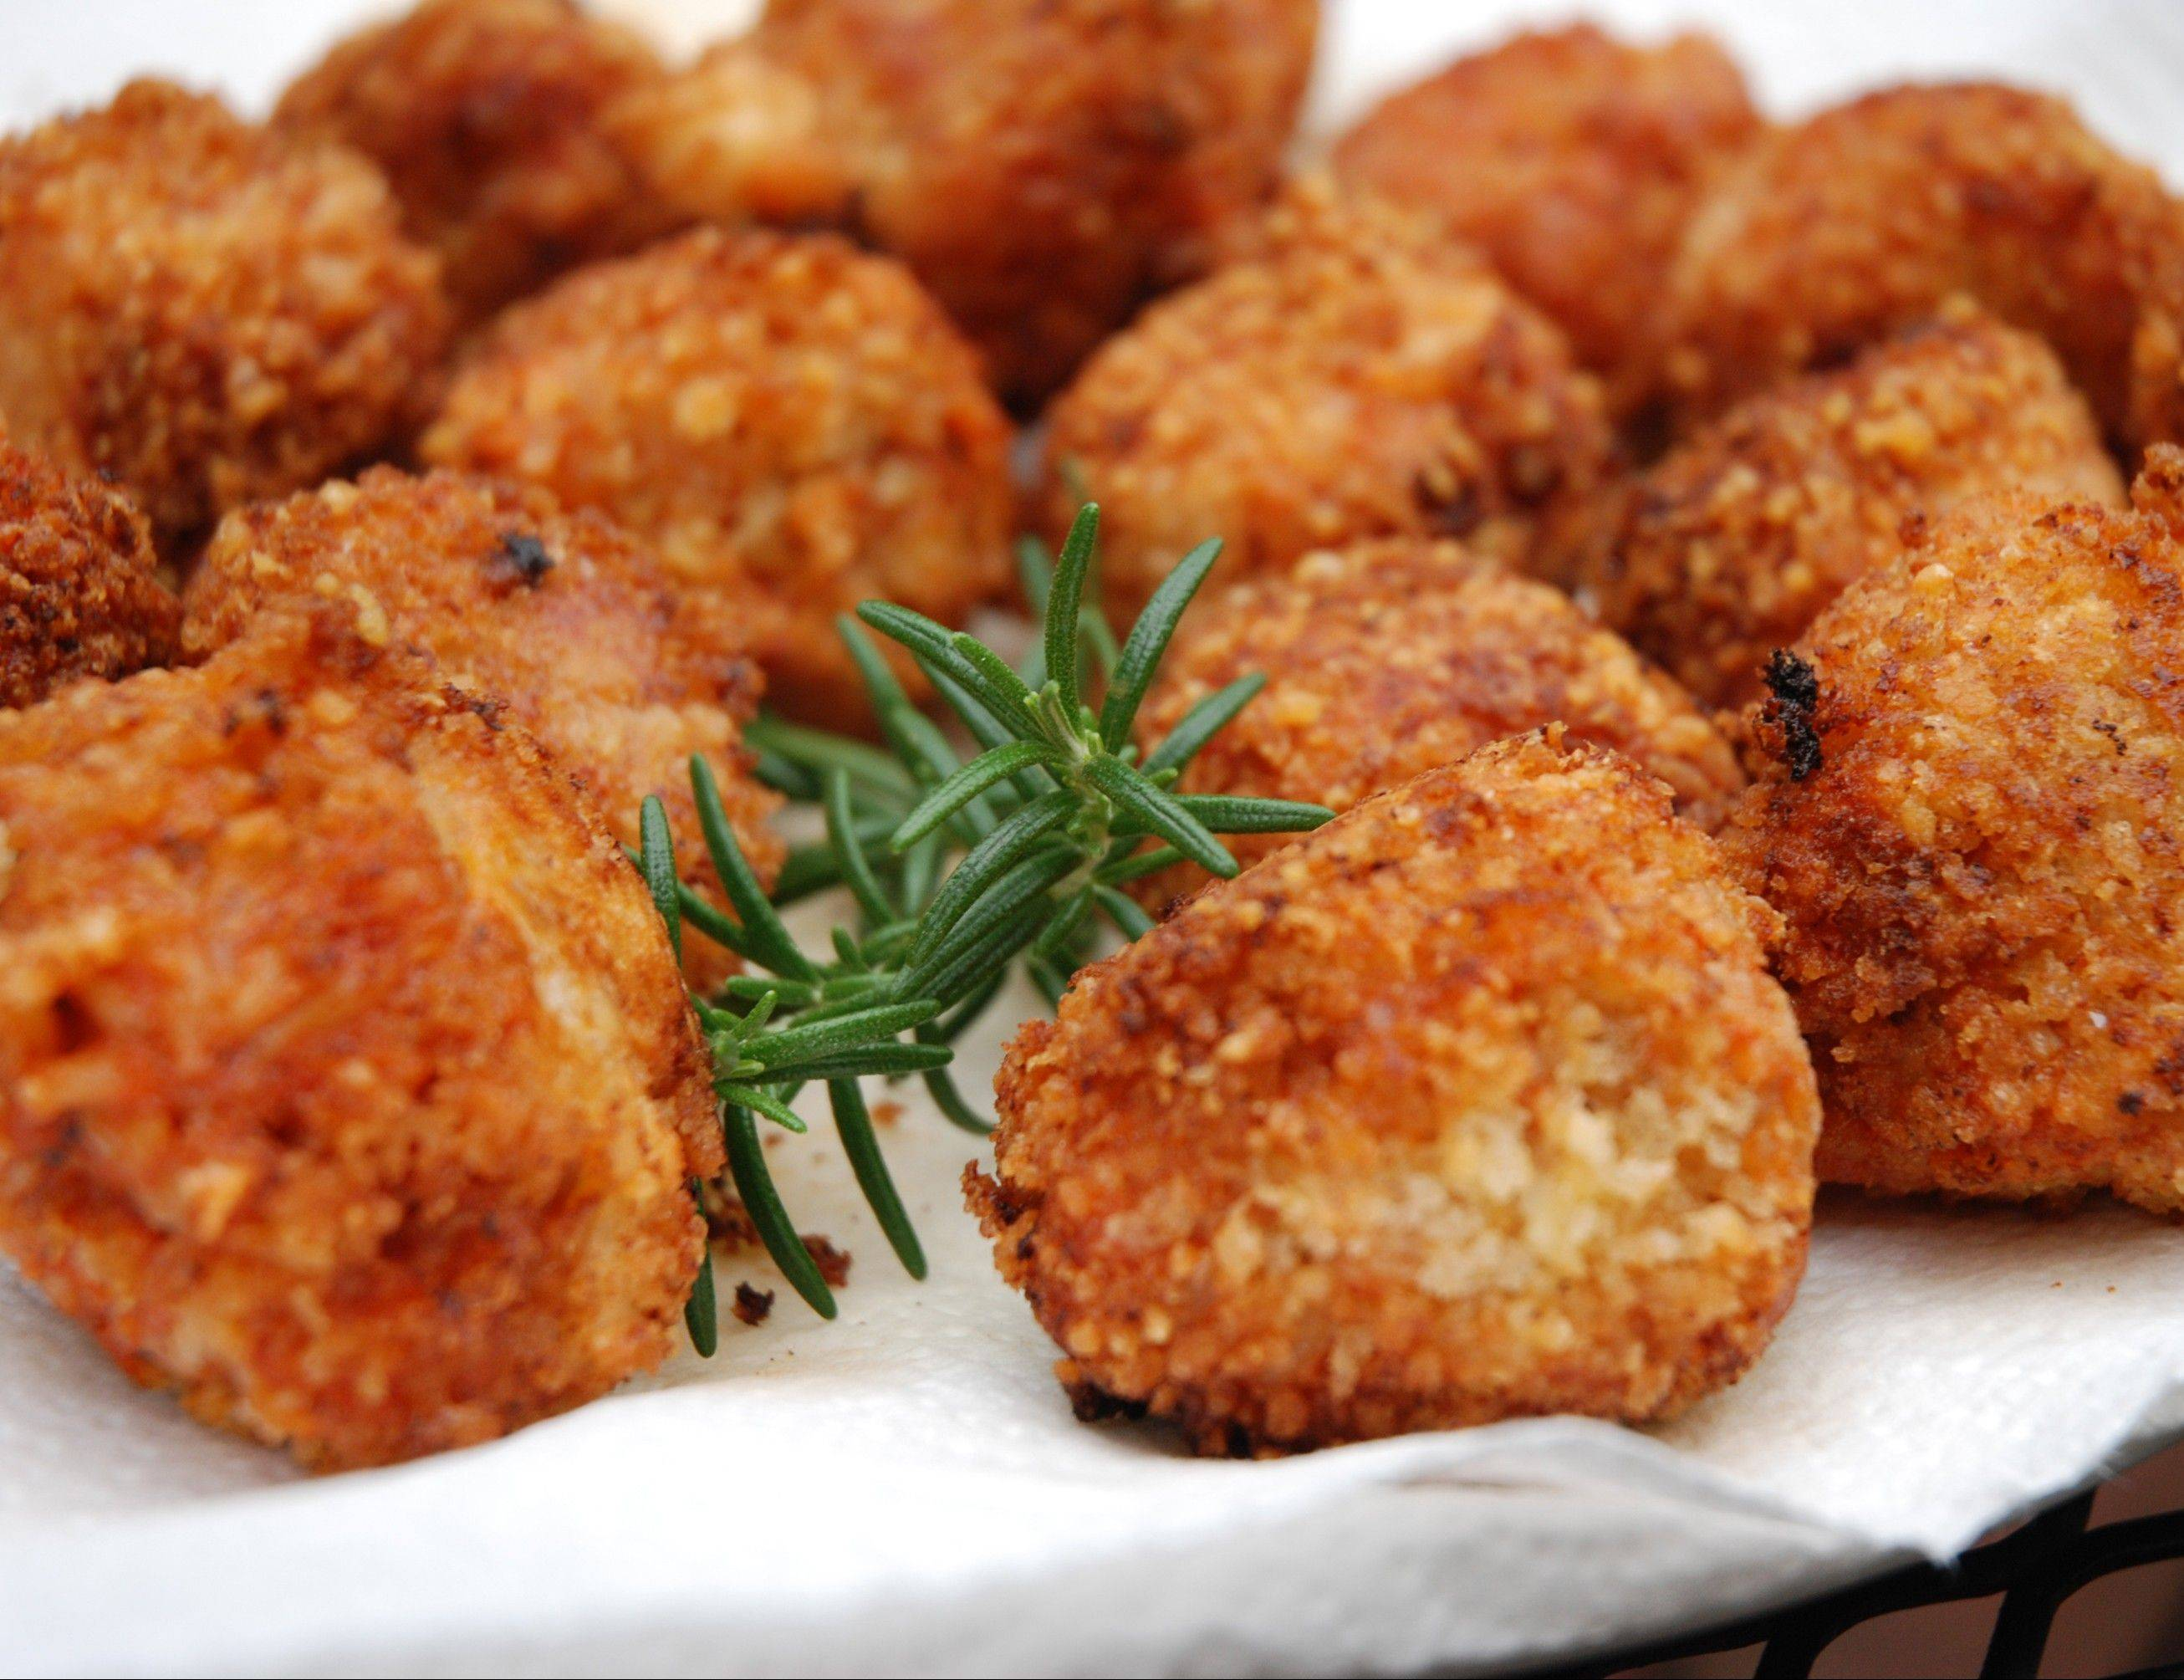 Leftover risotto rolls into tempting arancini